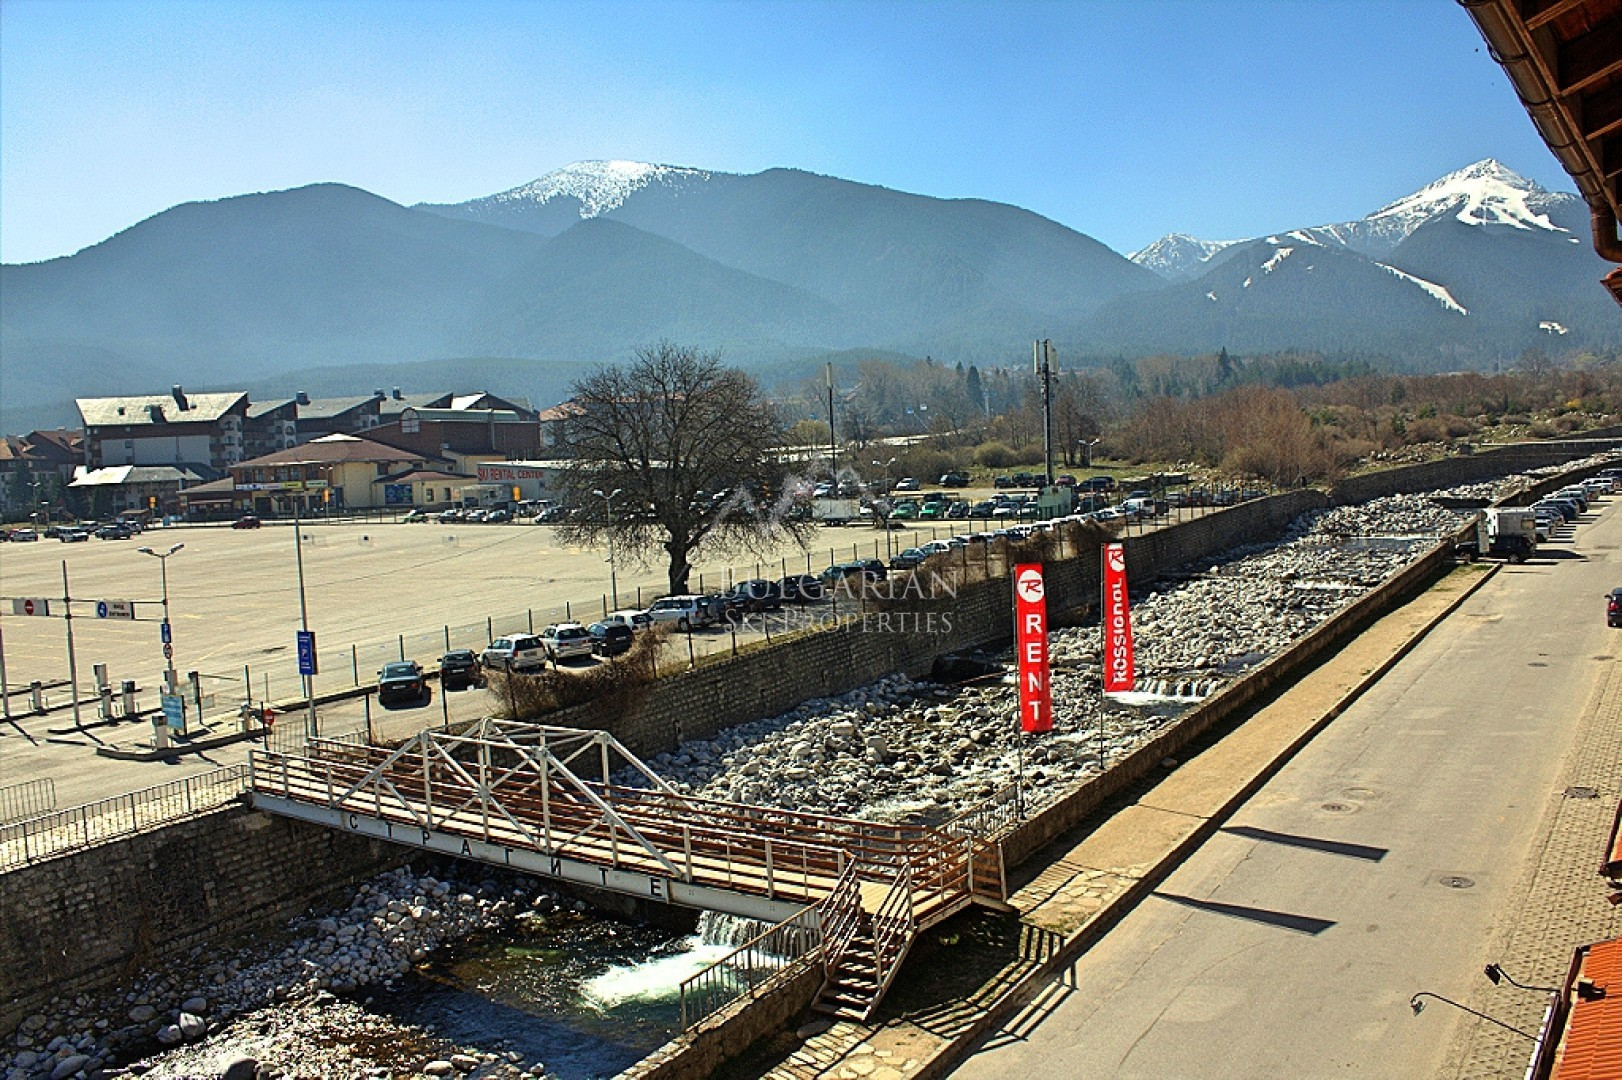 Bansko: furnished one-bedroom apartment for sale next to the ski lift